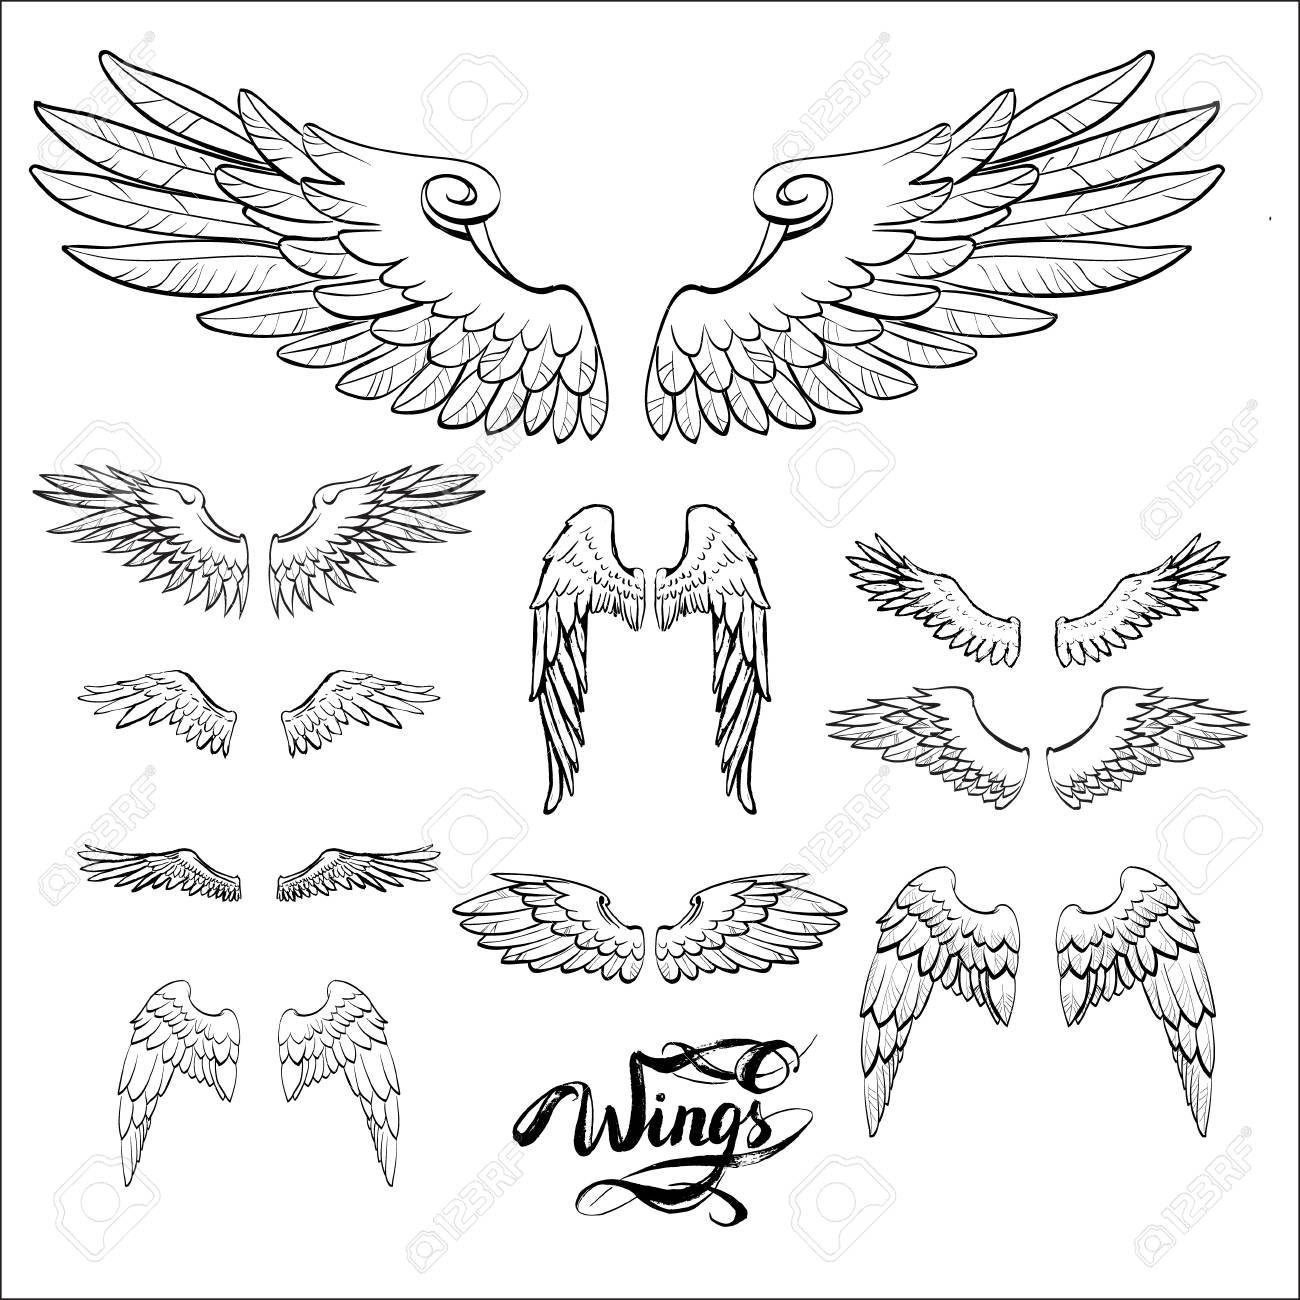 angel wings vector lettering drawing stock photo picture and Buffalo Wild Wings angel wings vector lettering drawing stock photo 73105833